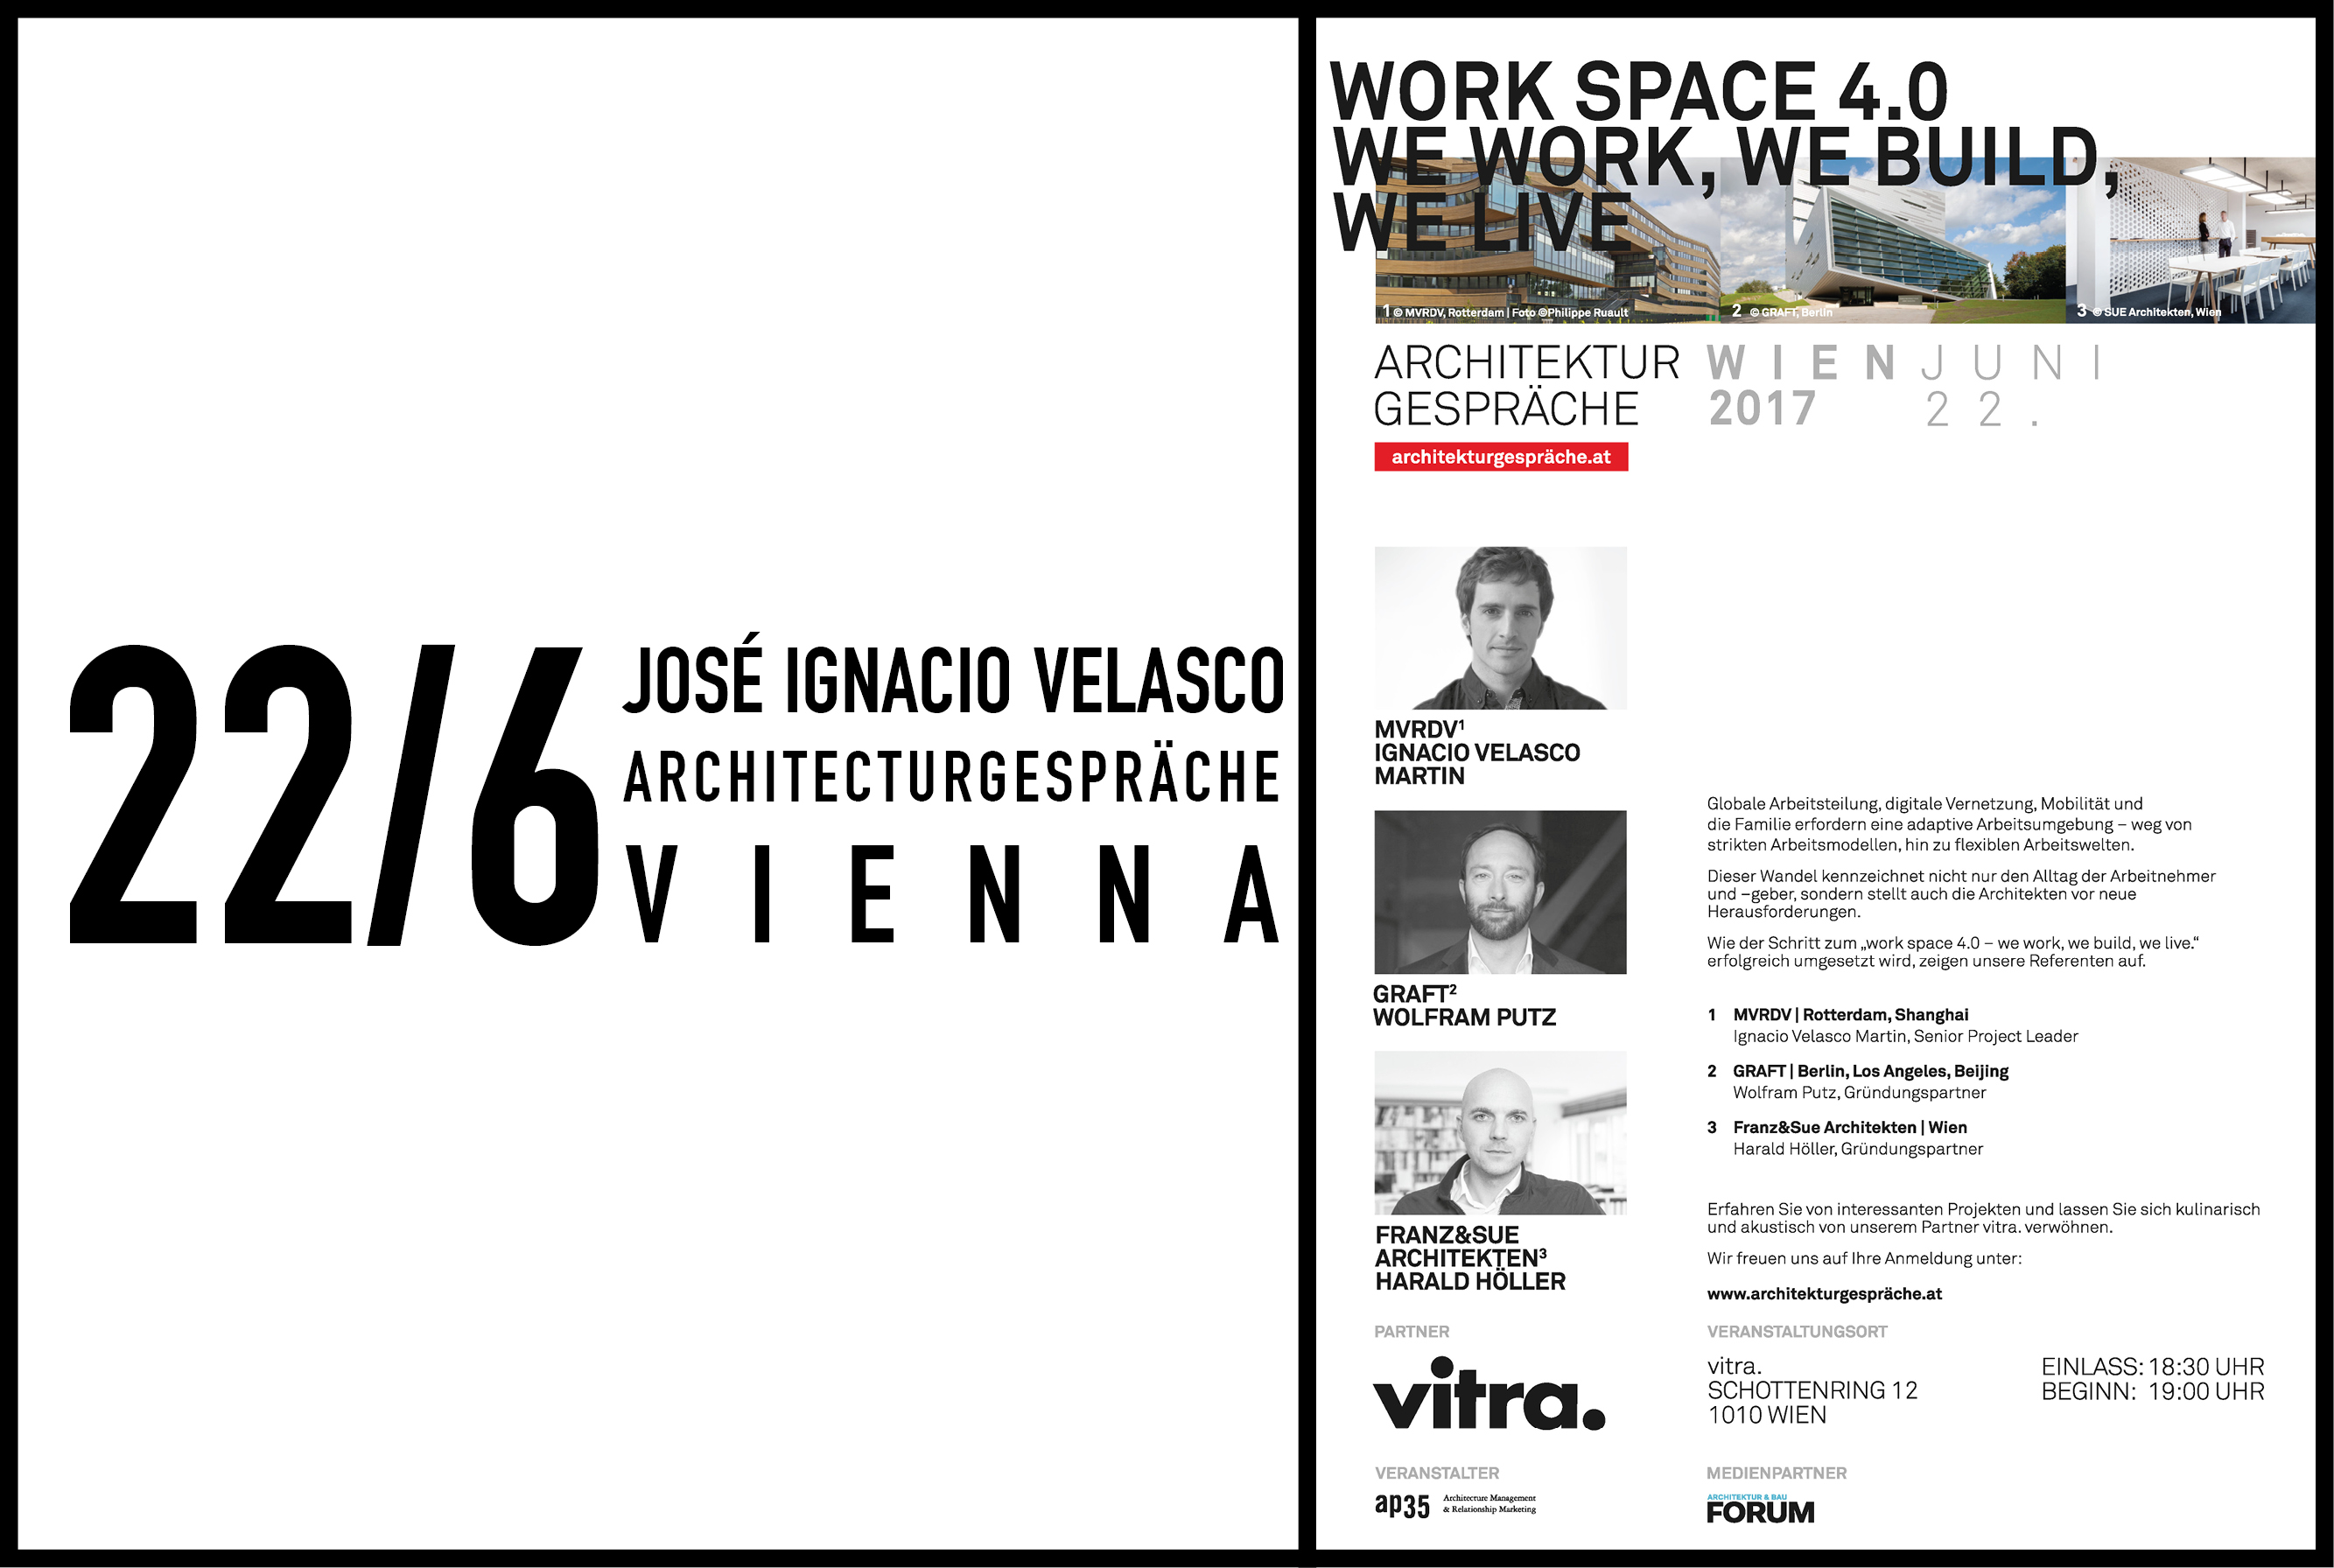 MVRDV's Jose Ignacio Velasco to speak at Architecturgespräche in Vienna, 22 June 2017